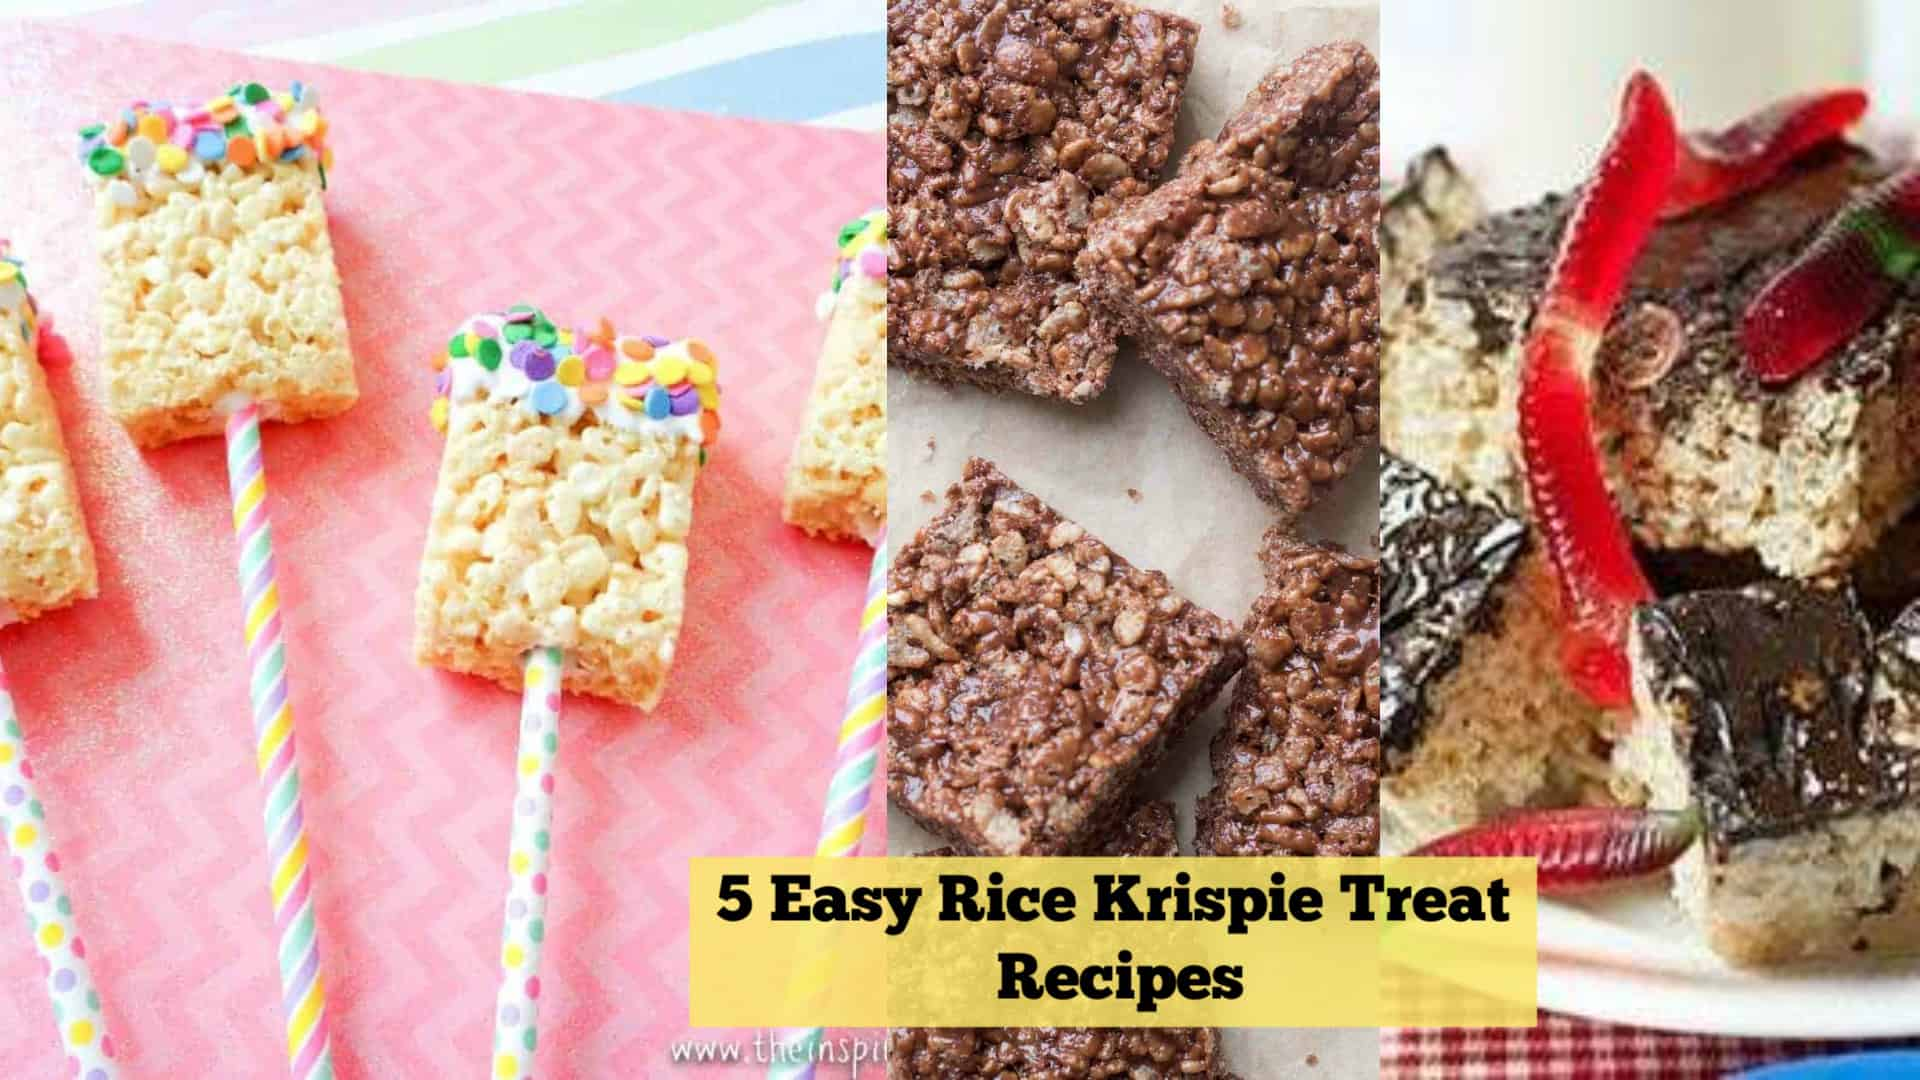 5 Easy Rice Krispie Treat Recipes That Kids Can Make